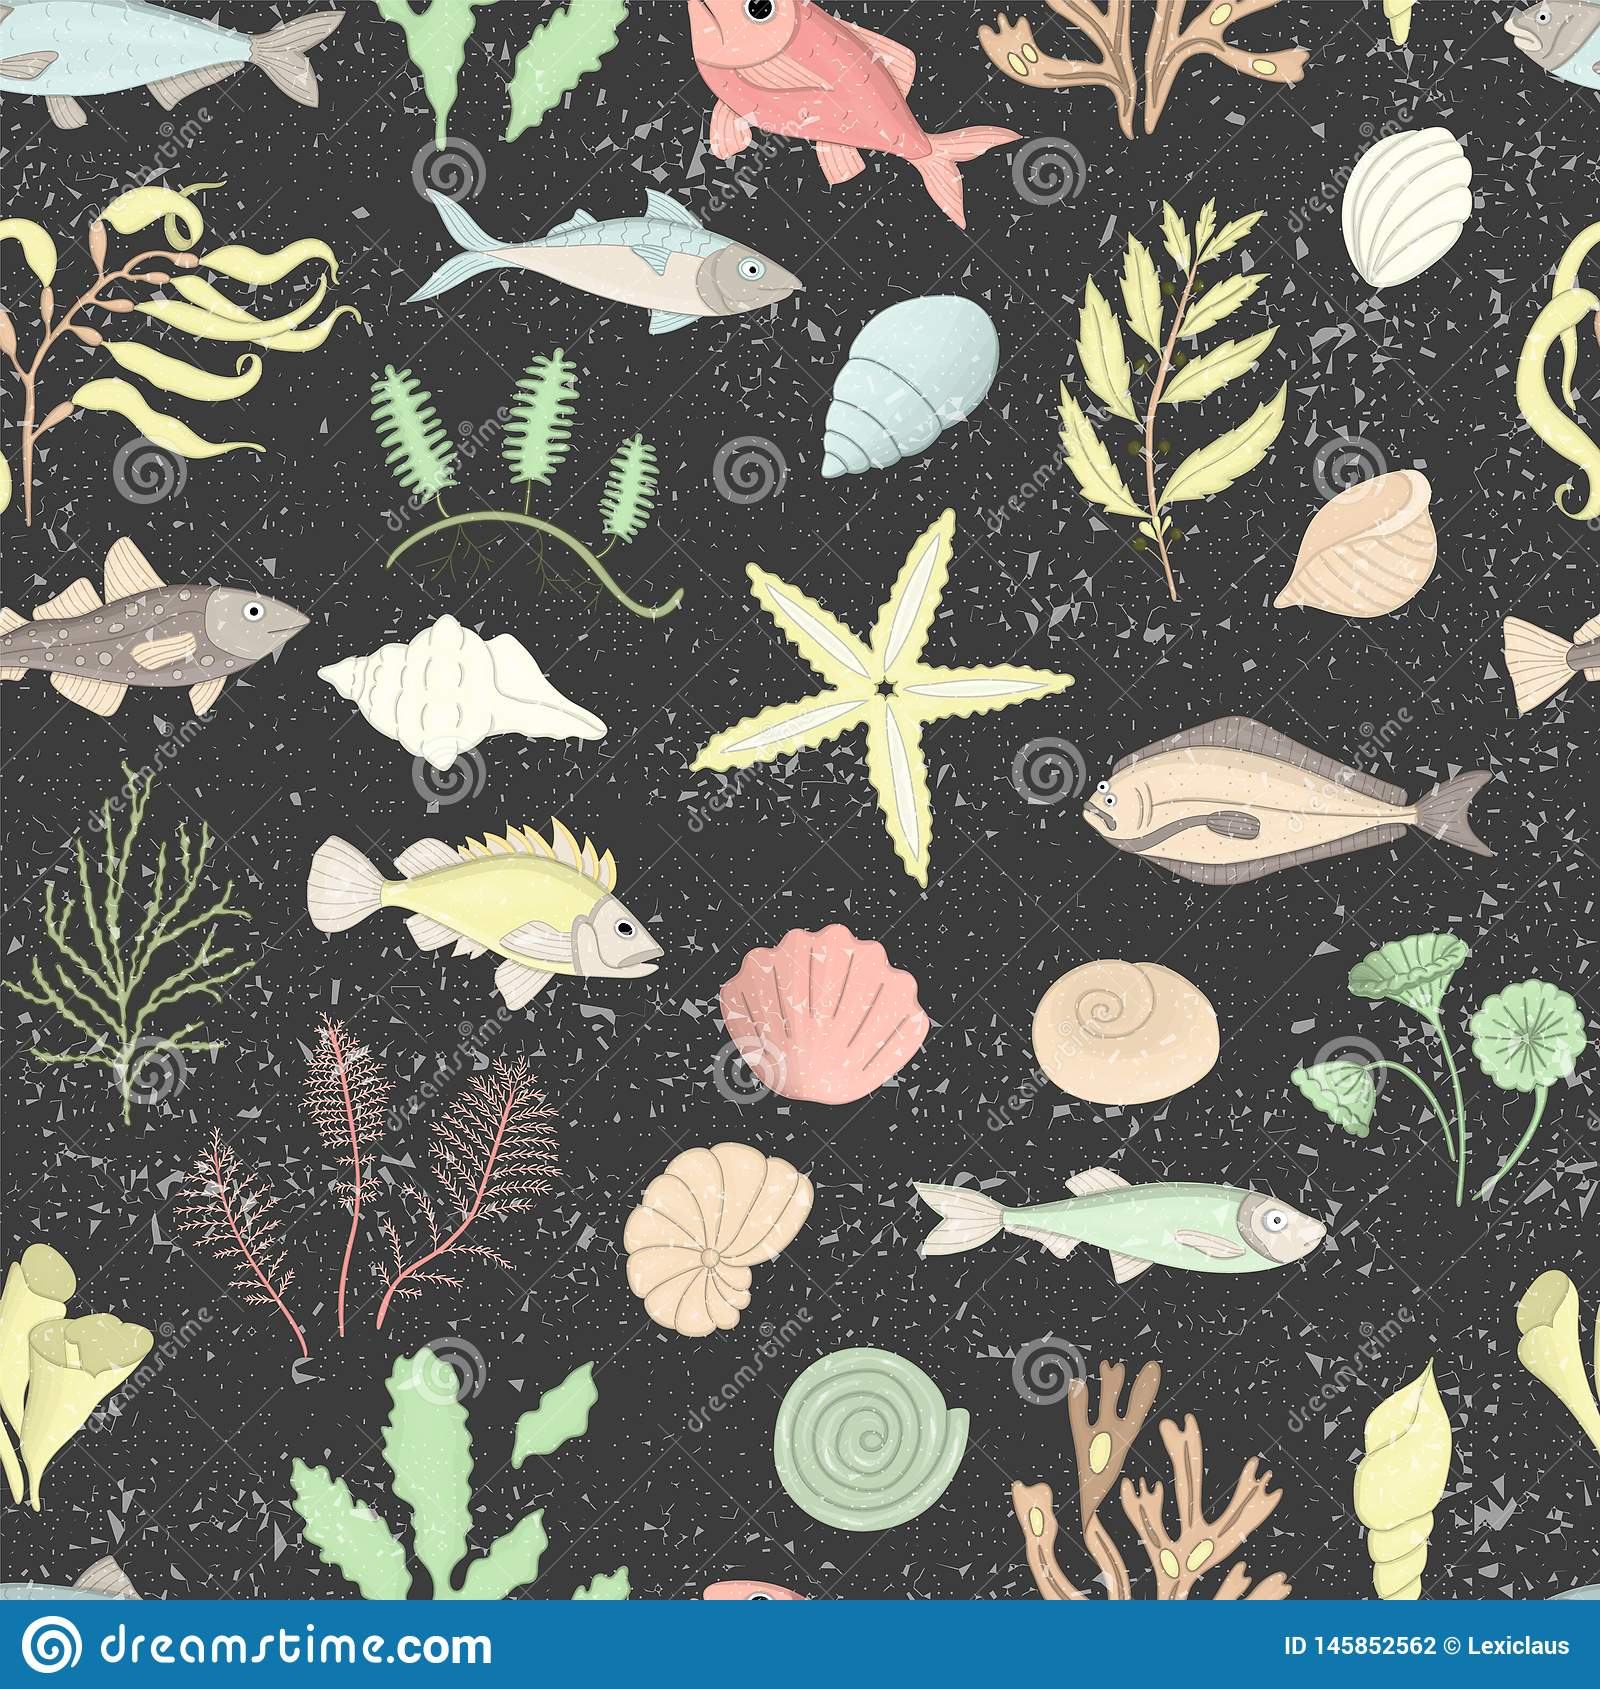 Vector colored seamless pattern of sea shells, fish, seaweeds isolated on black textured background